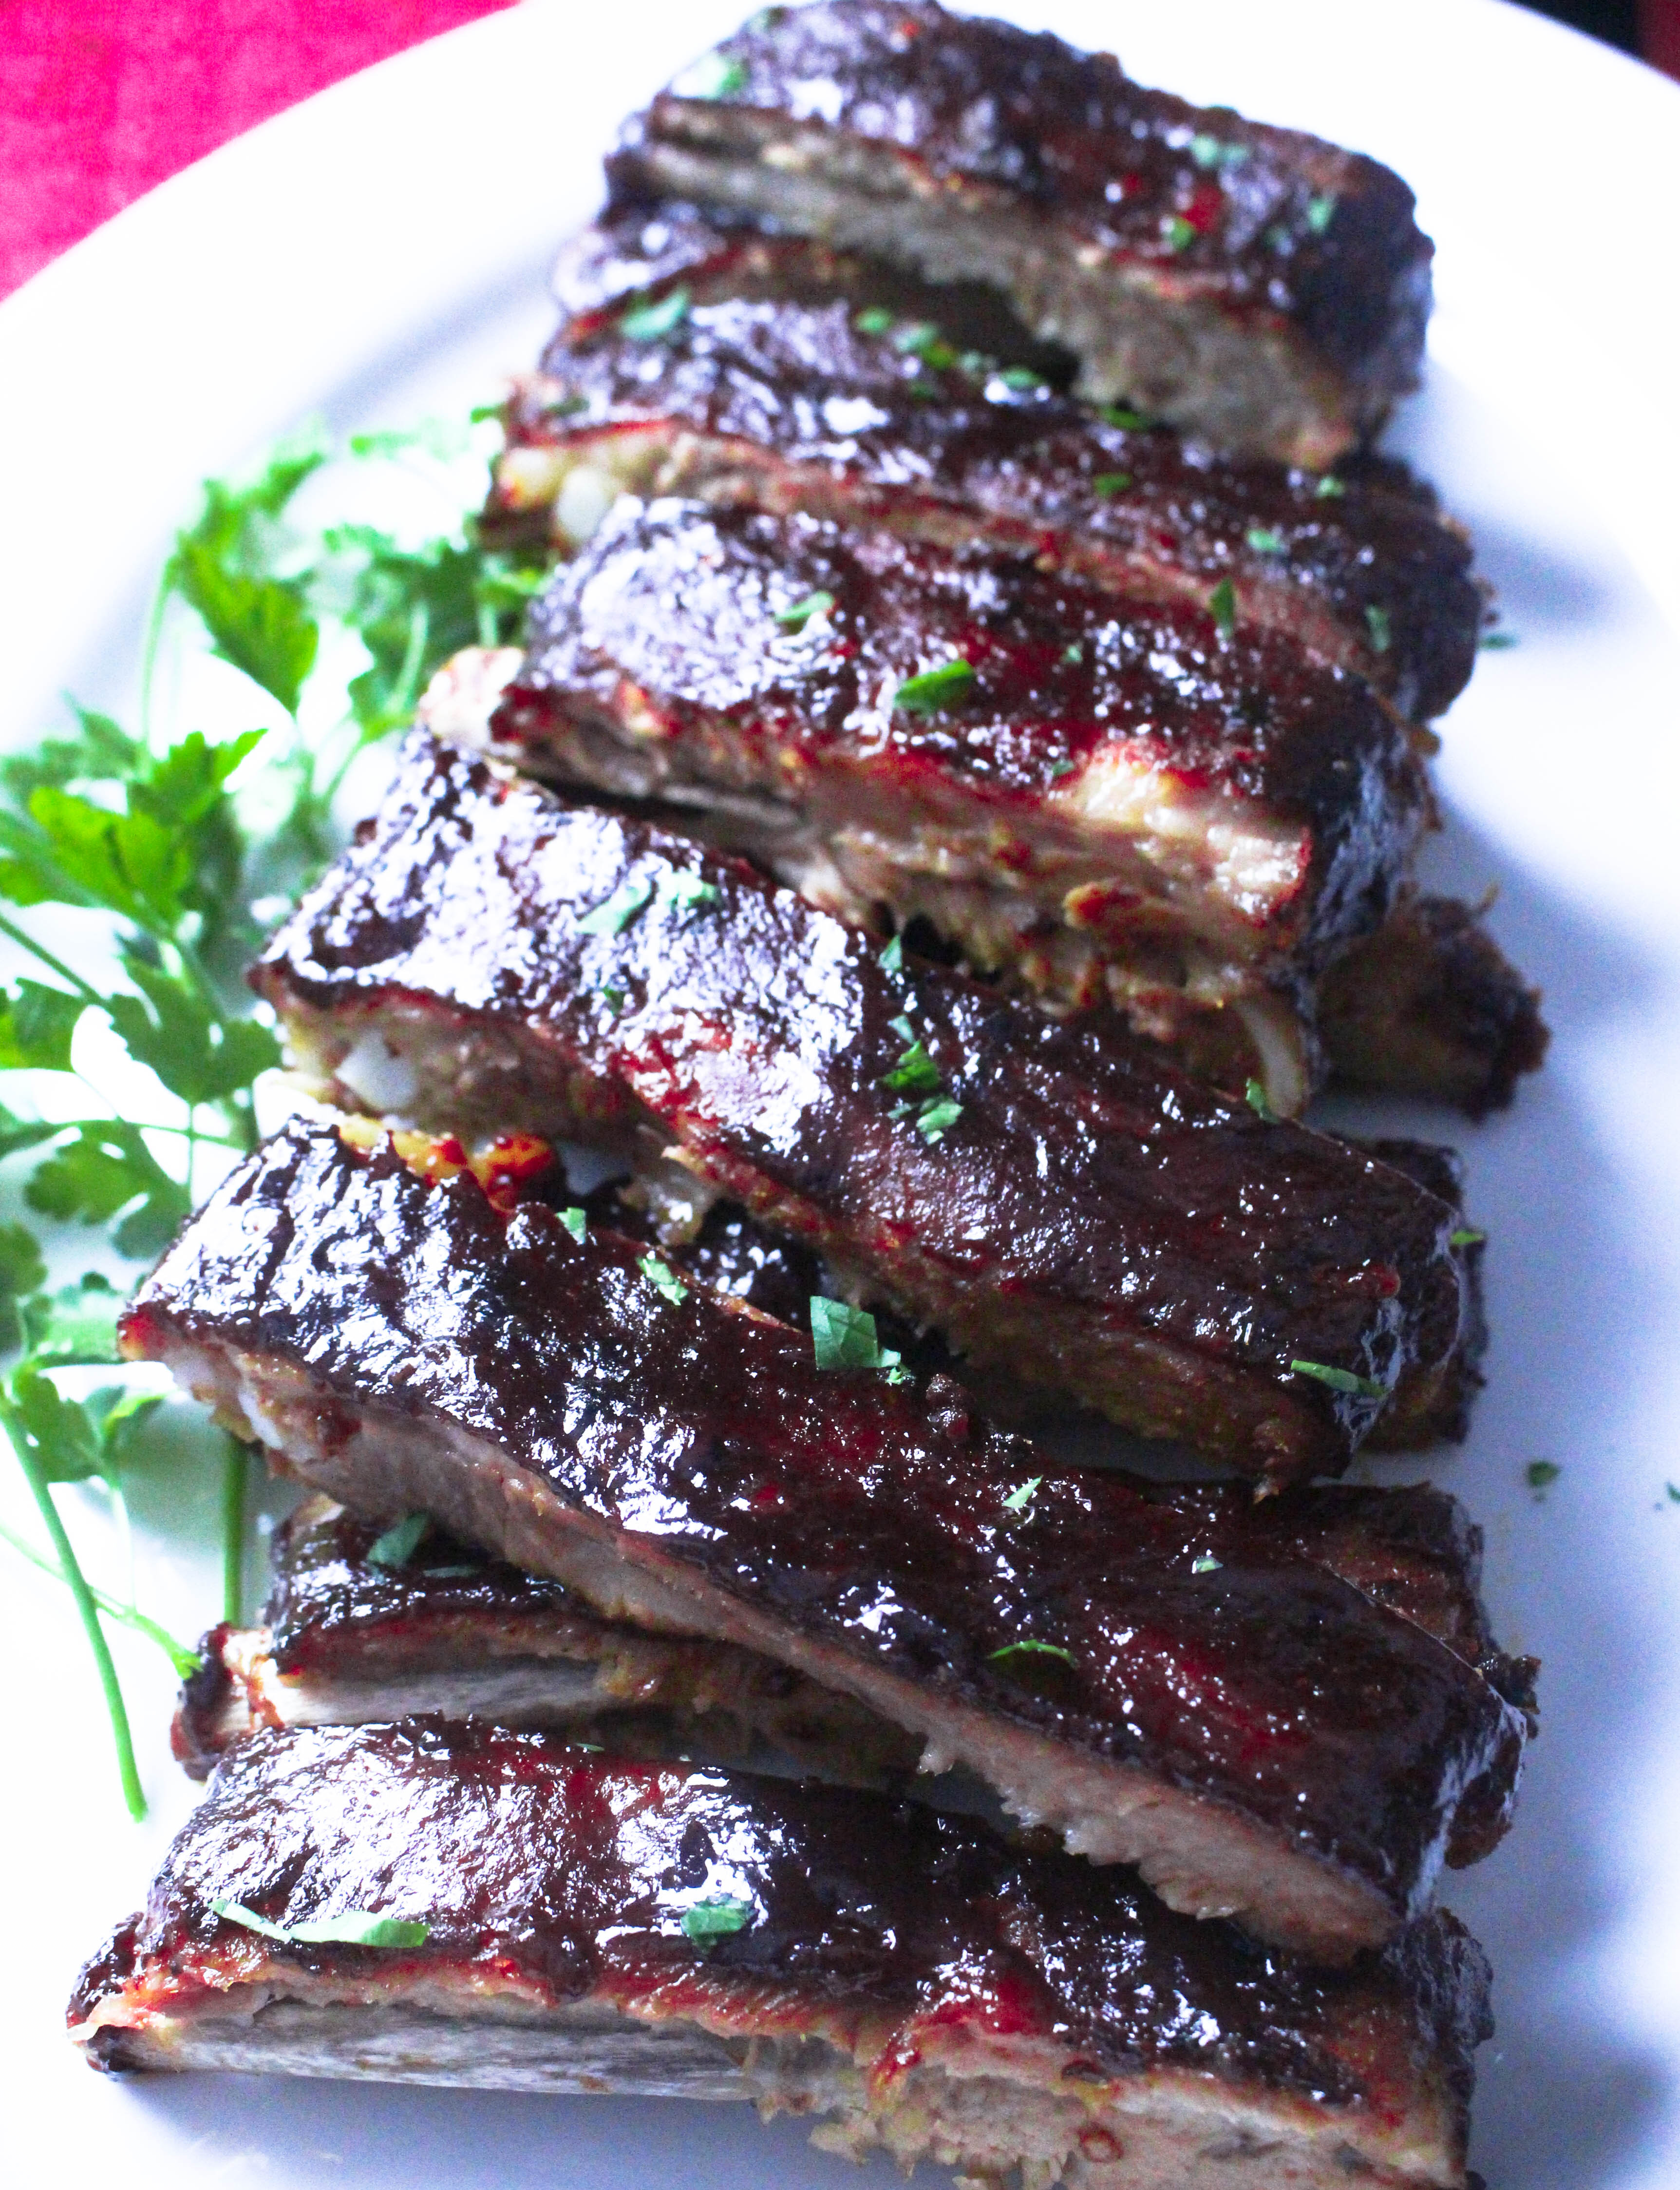 How to make oven baked ribs taste like the grill